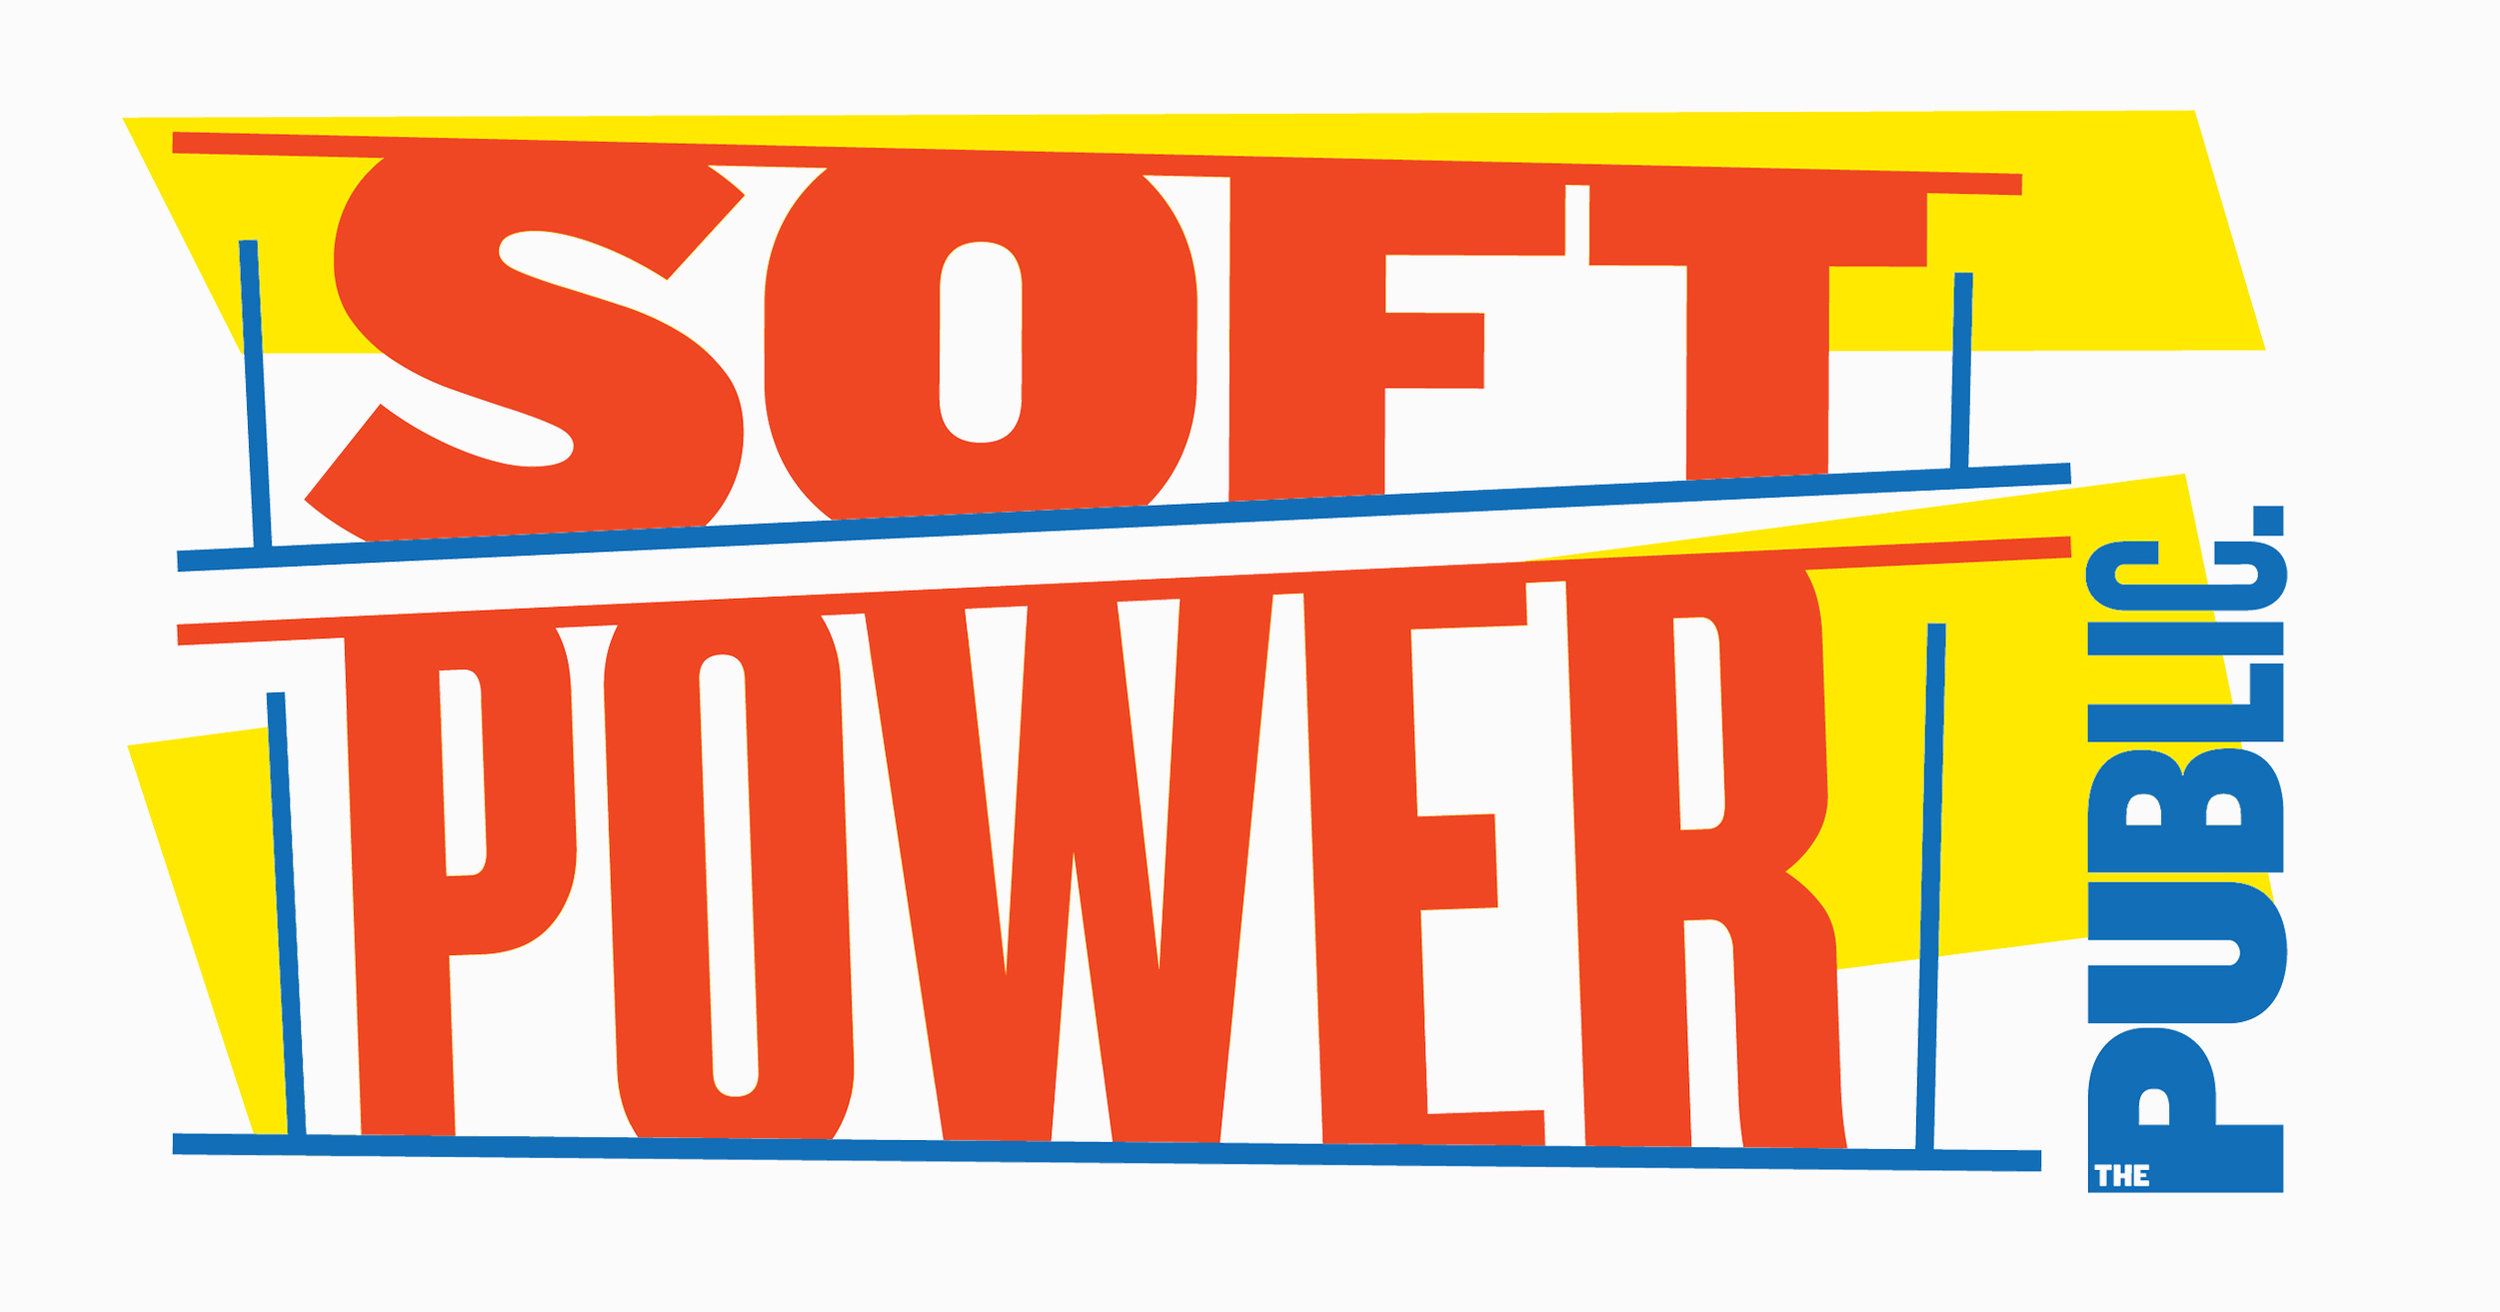 Soft-powerBright.png